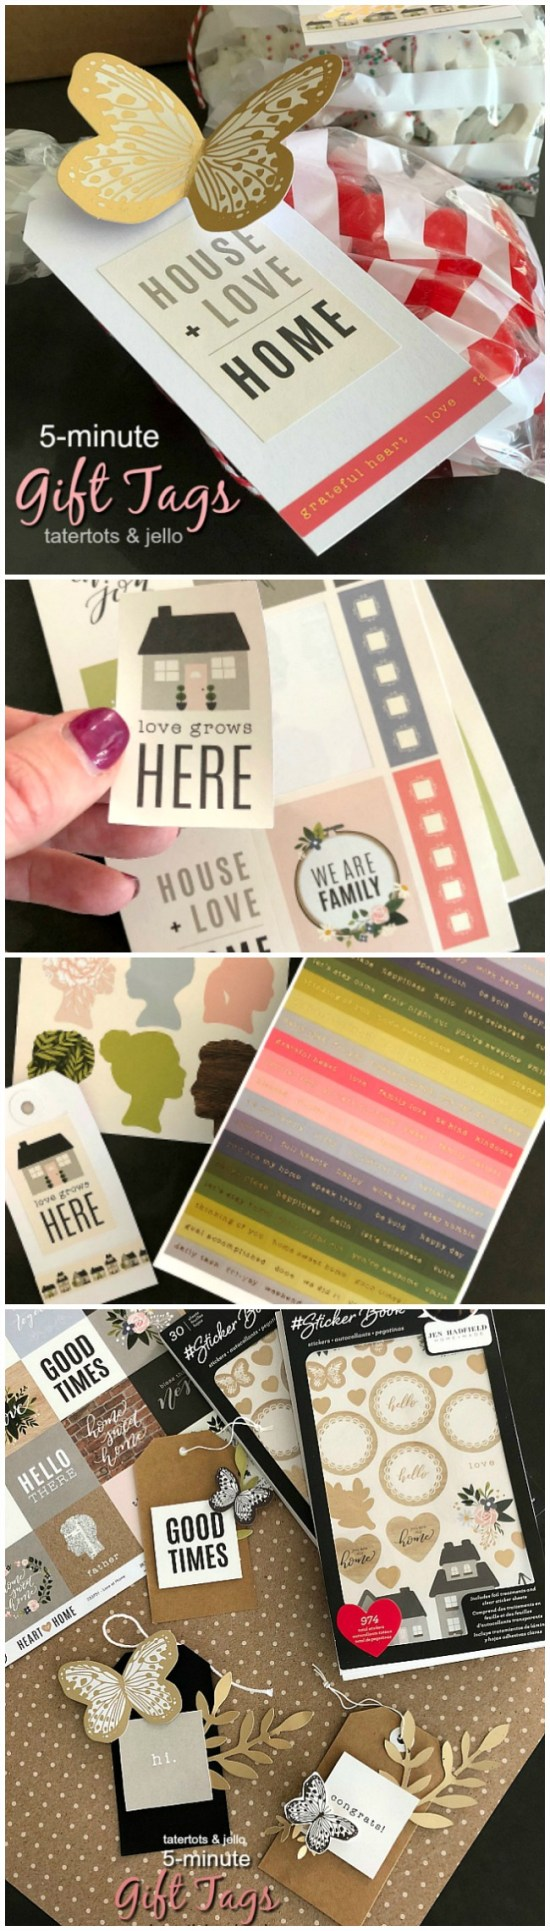 Easy 5-minute gift tags. A sticker book has over 900 stickers and makes it easy to create beautiful tags.